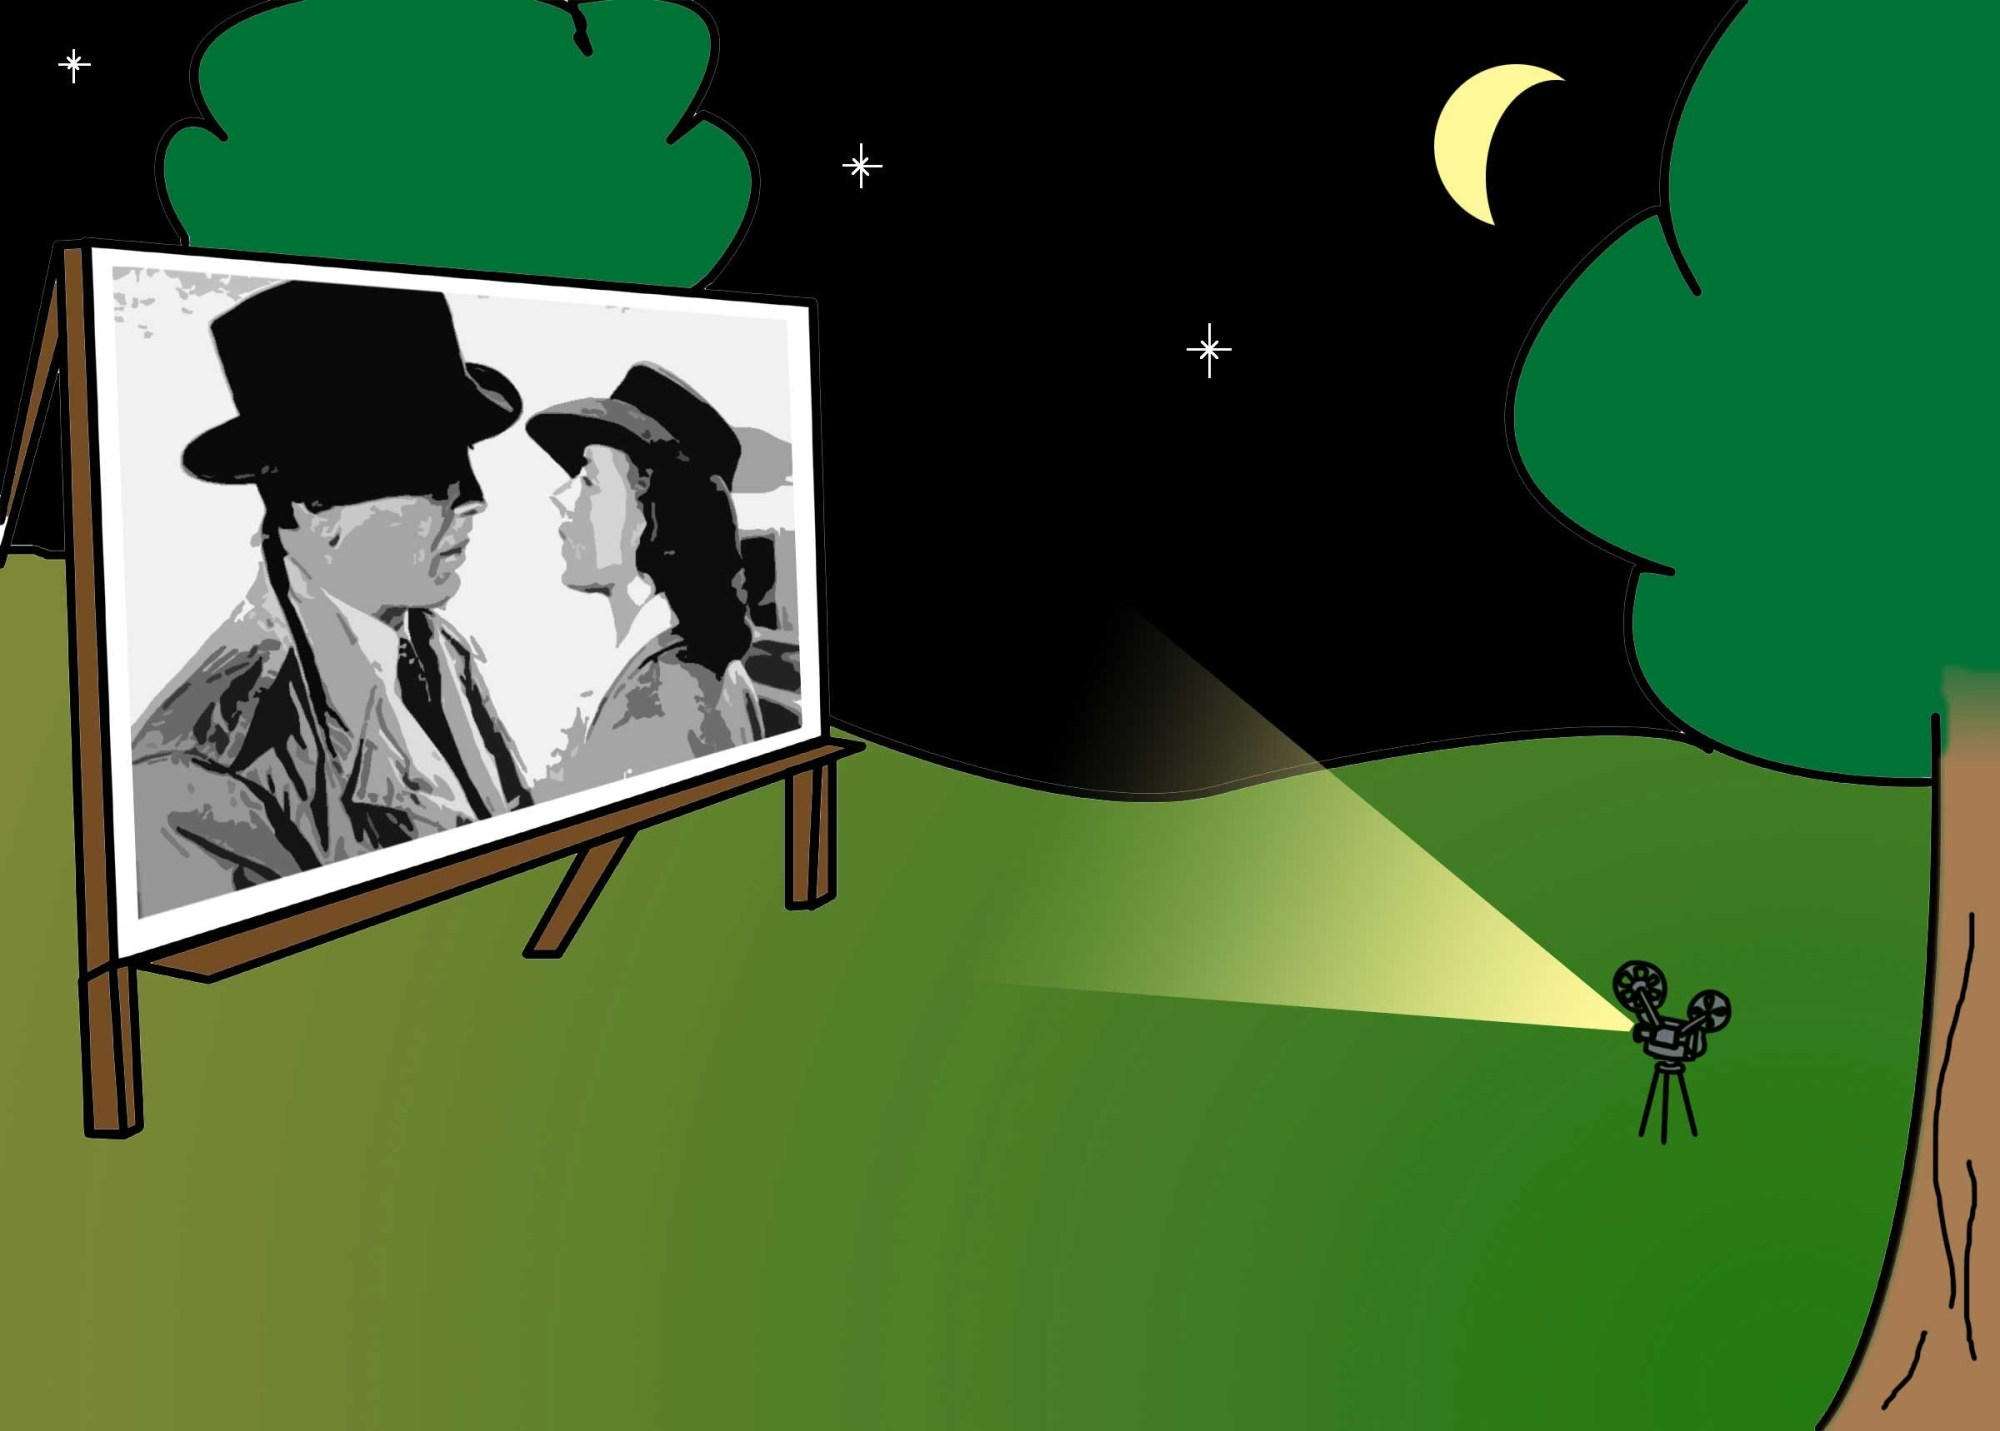 hight resolution of backyard movie night clipart